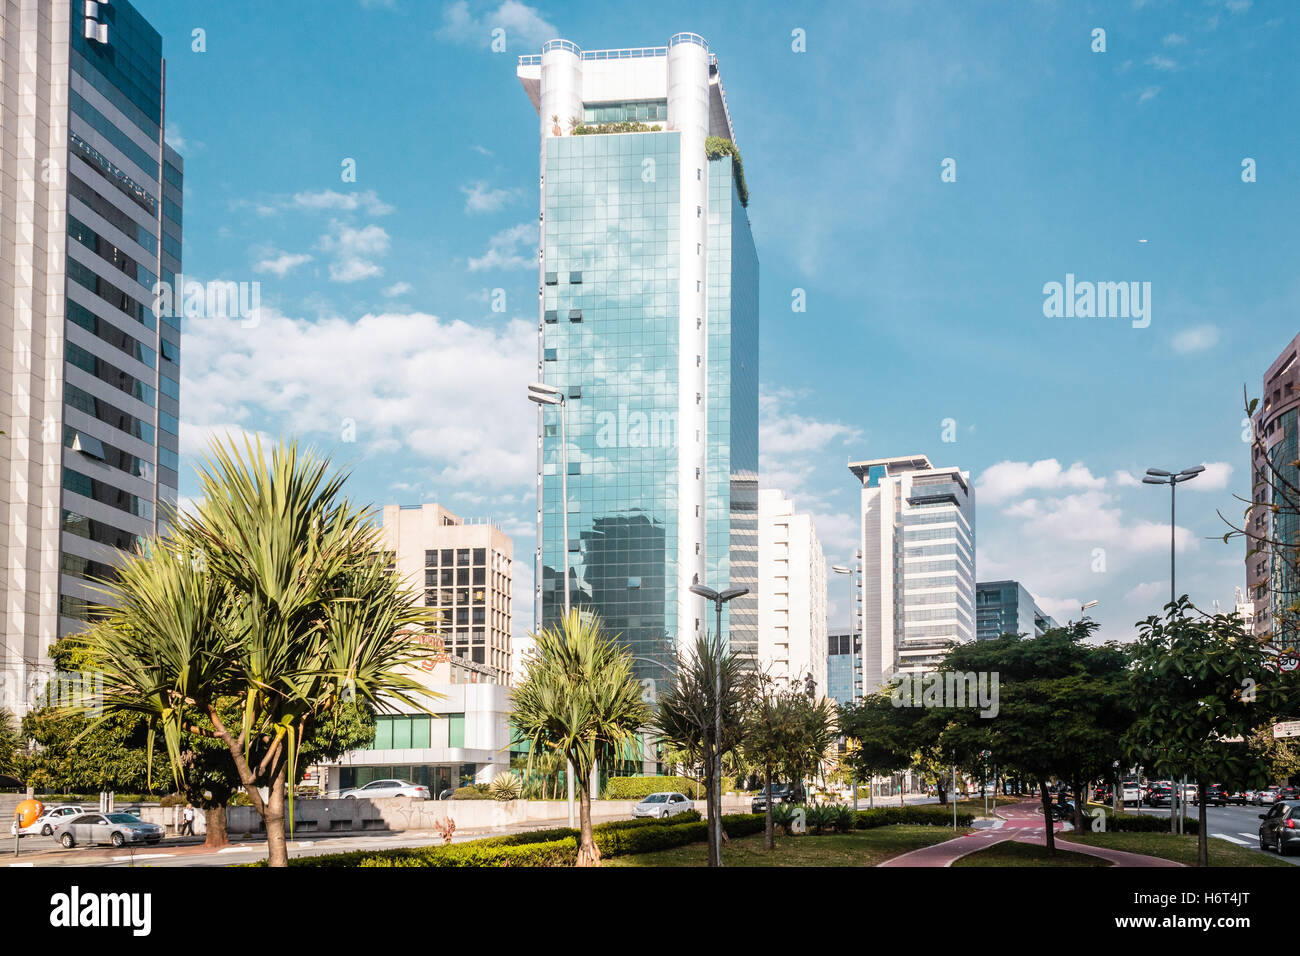 Photo de bâtiments et les rues de Sao Paulo, Brésil (Brasil) Photo Stock